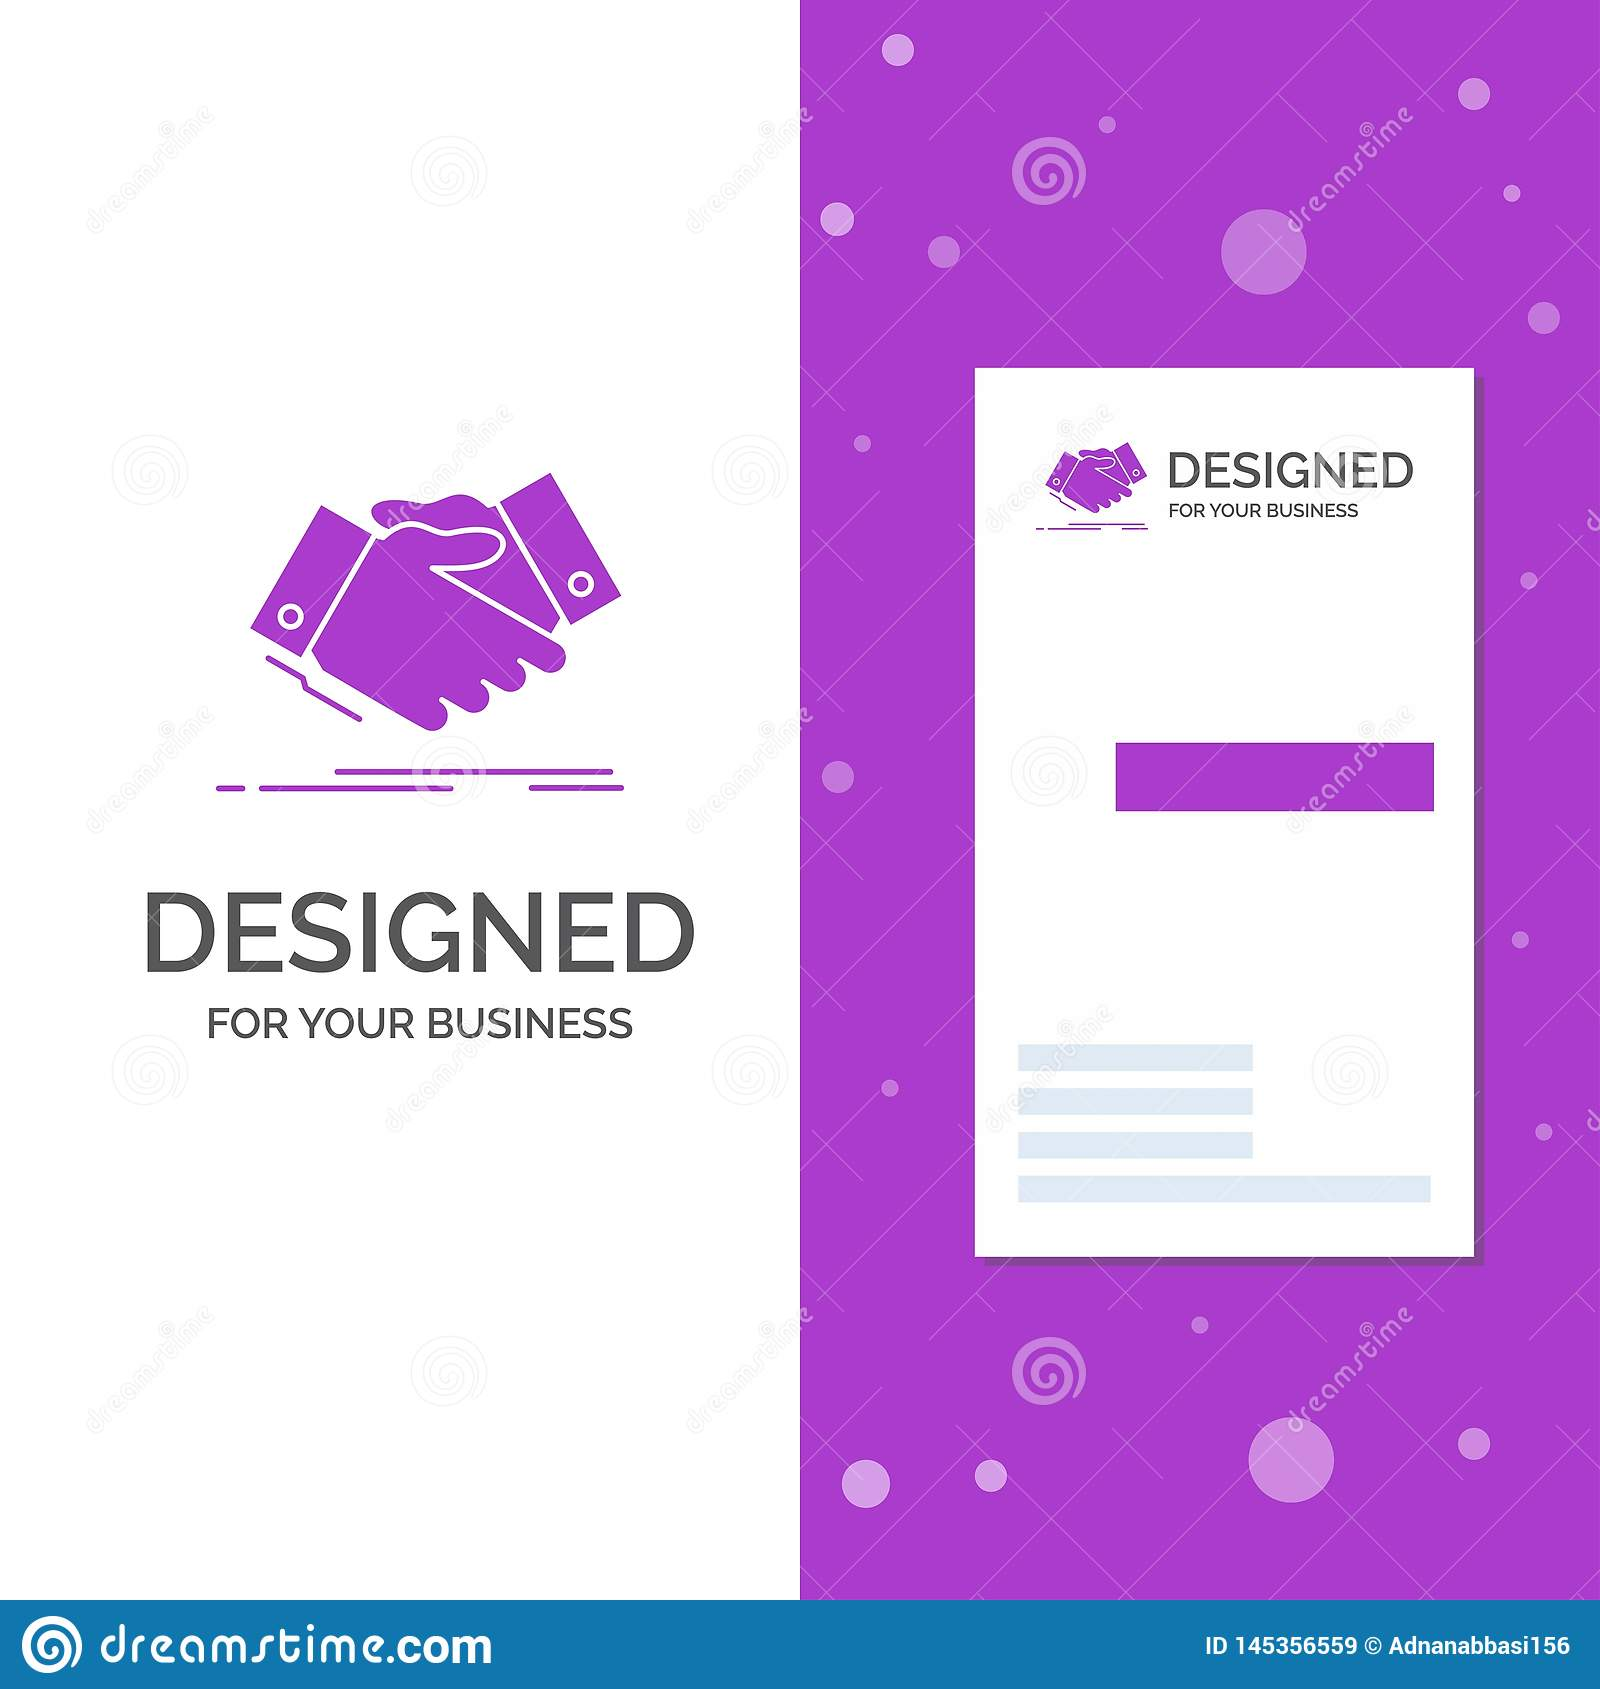 Business Logo for handshake, hand shake, shaking hand, Agreement, business. Vertical Purple Business / Visiting Card template.